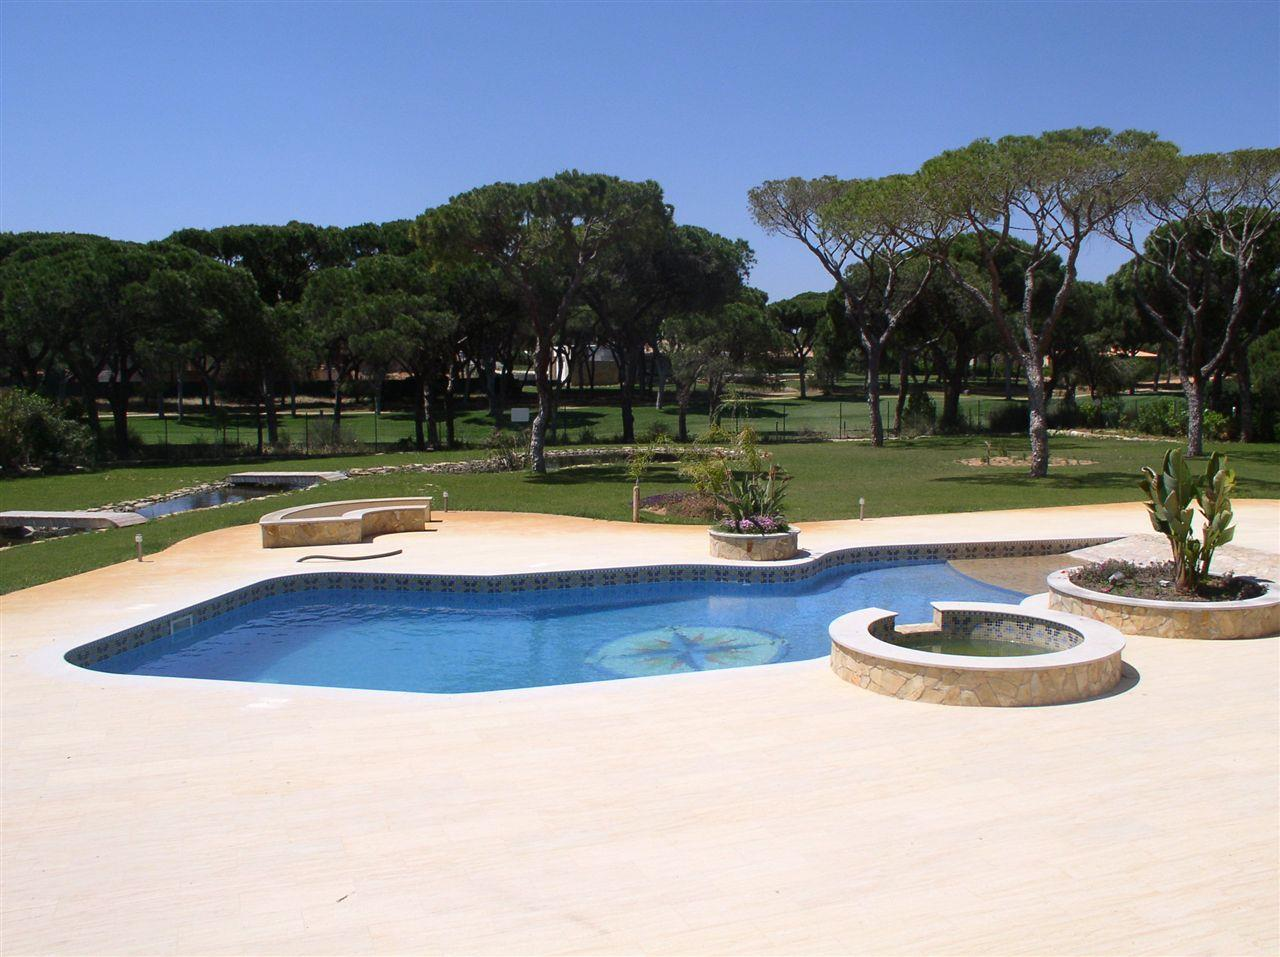 Single Family Home for Sale at House, 9 bedrooms, for Sale Loule, Algarve, Portugal